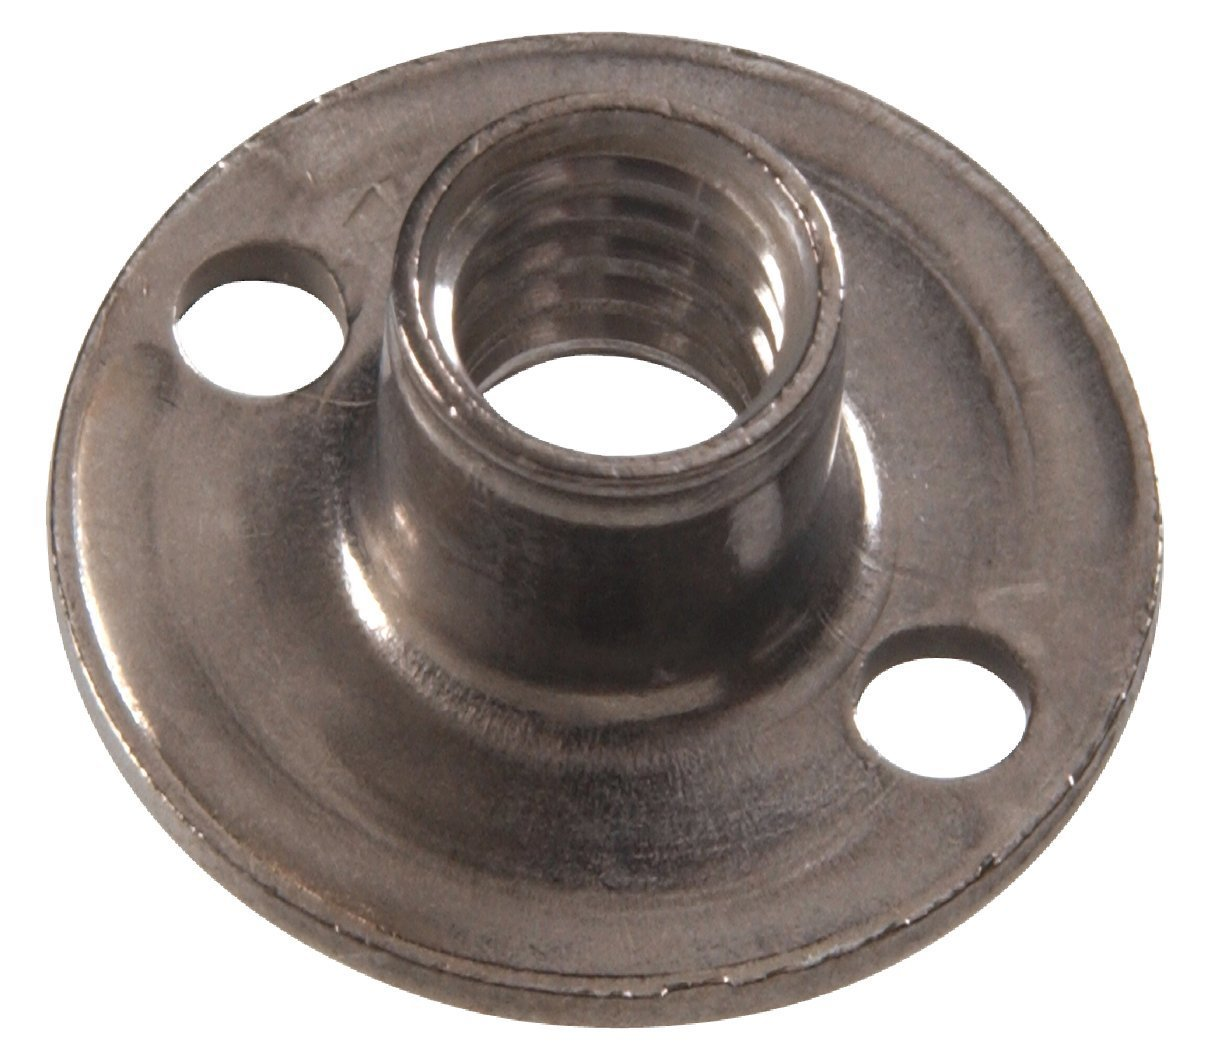 The Hillman Group The Hillman Group 4143 10-24 x 9/32 x 3/4 In. Stainless Steel Round Base Tee Nut (2 Packs of 12)